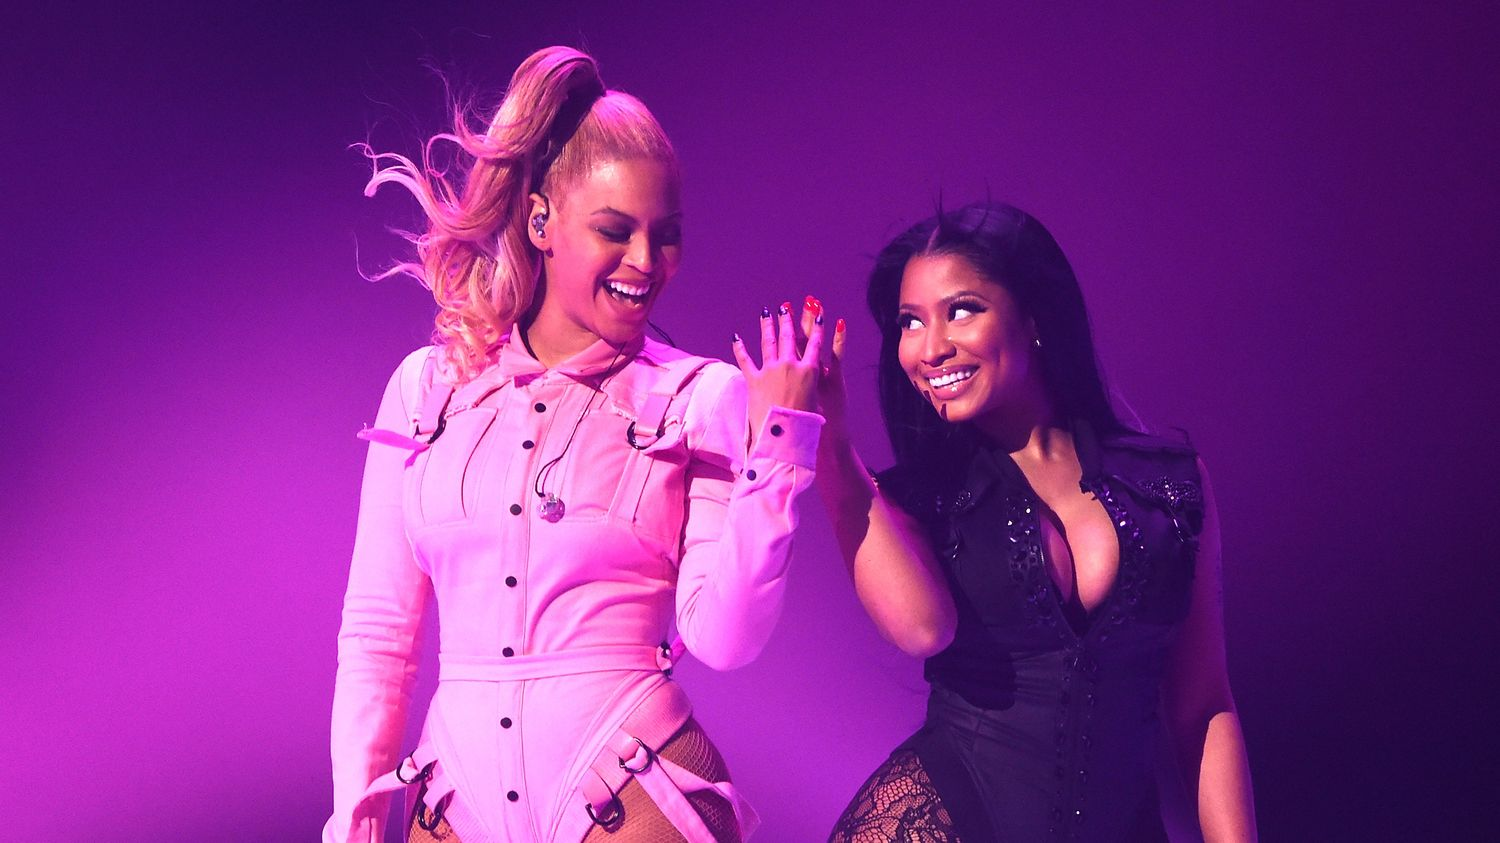 Nicki Minaj And Beyonce Perform 'Feeling Myself' Together For The First Time